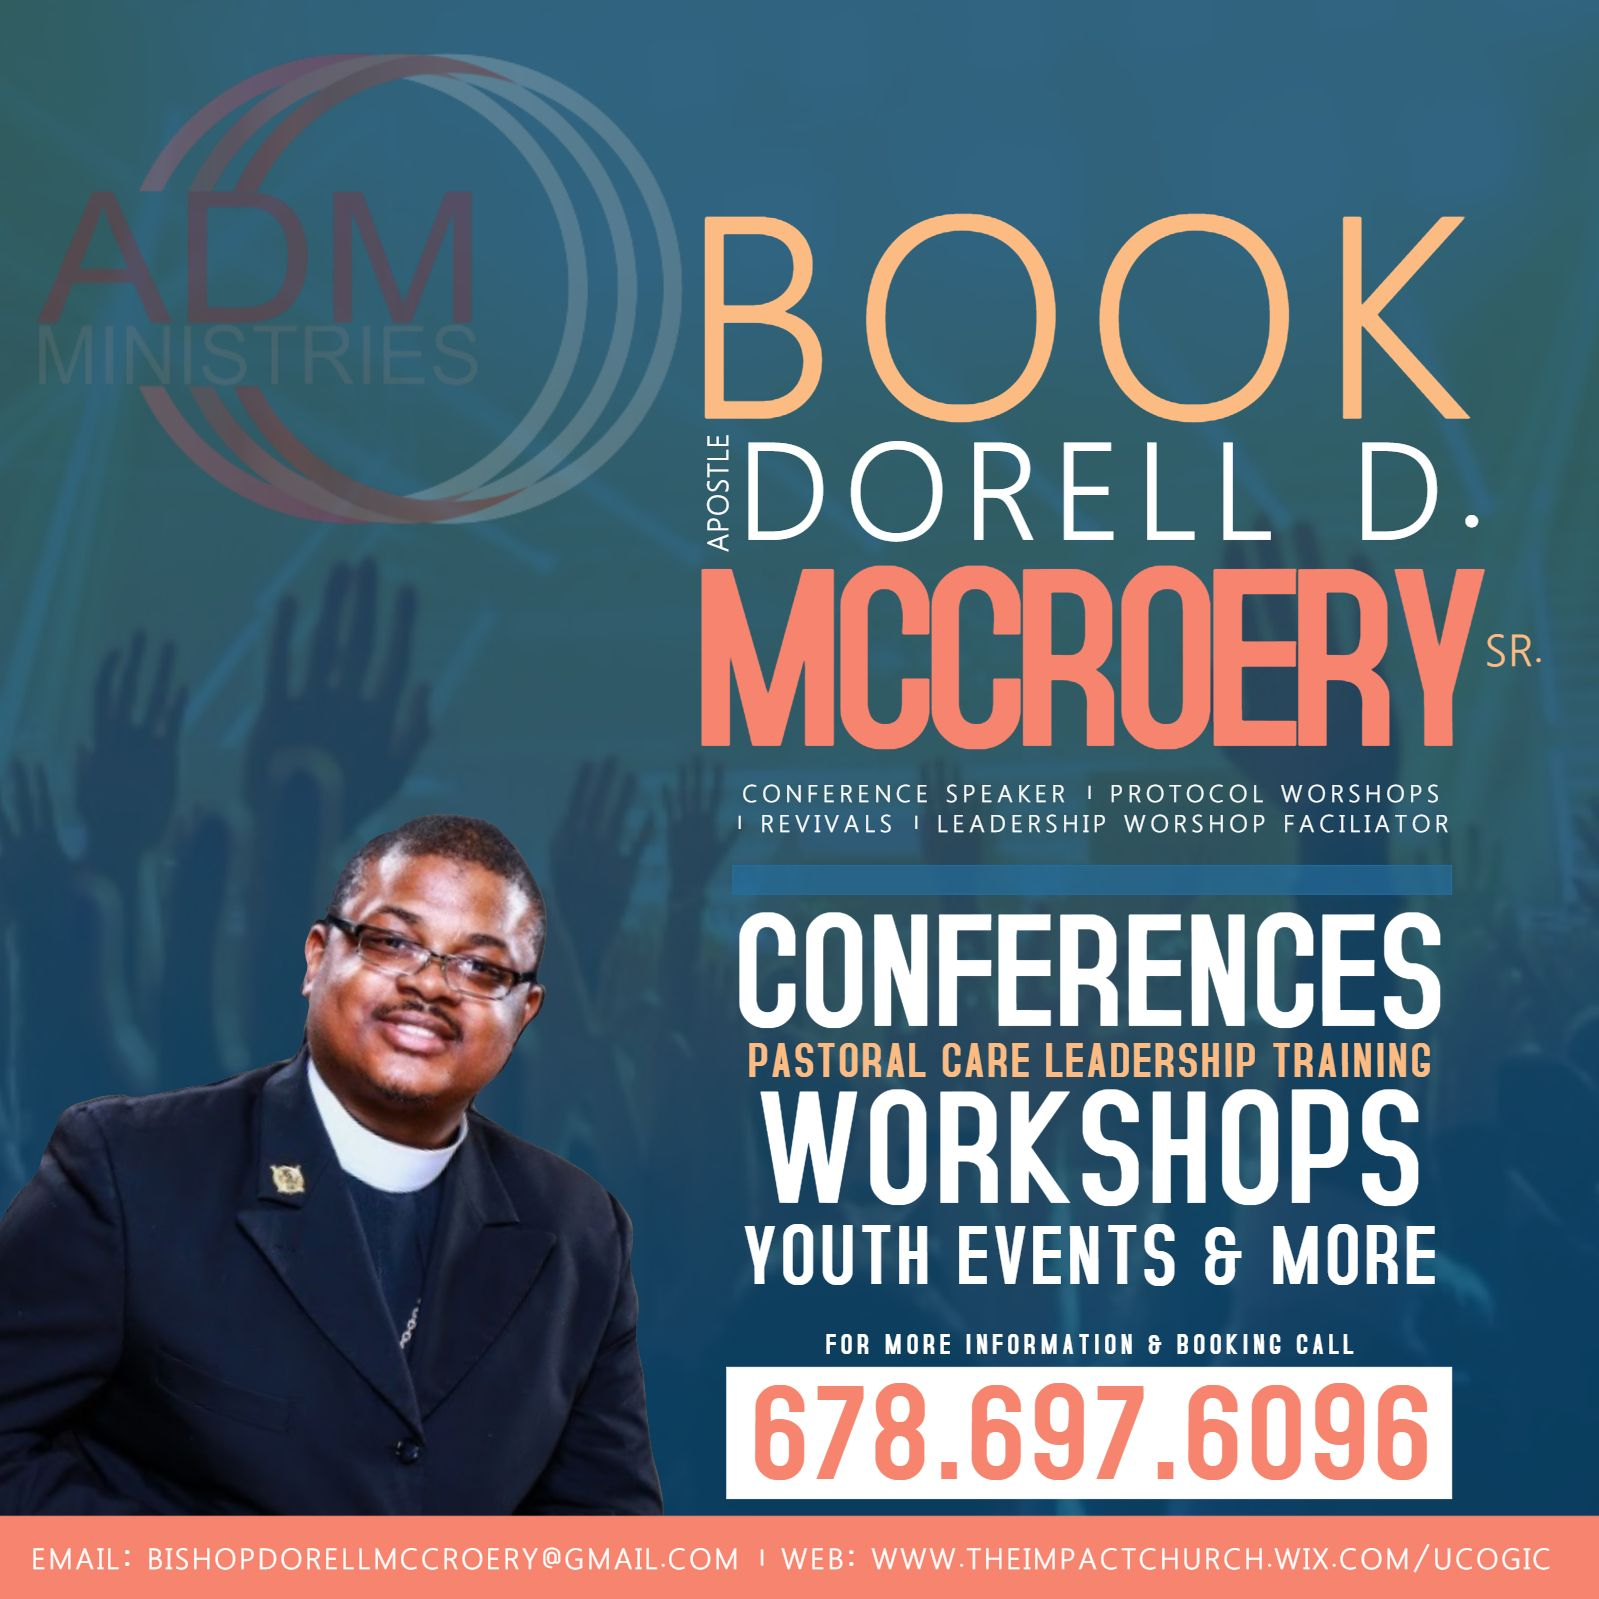 Church workshop conference event flyer template church event flyer church workshop conference event flyer template saigontimesfo